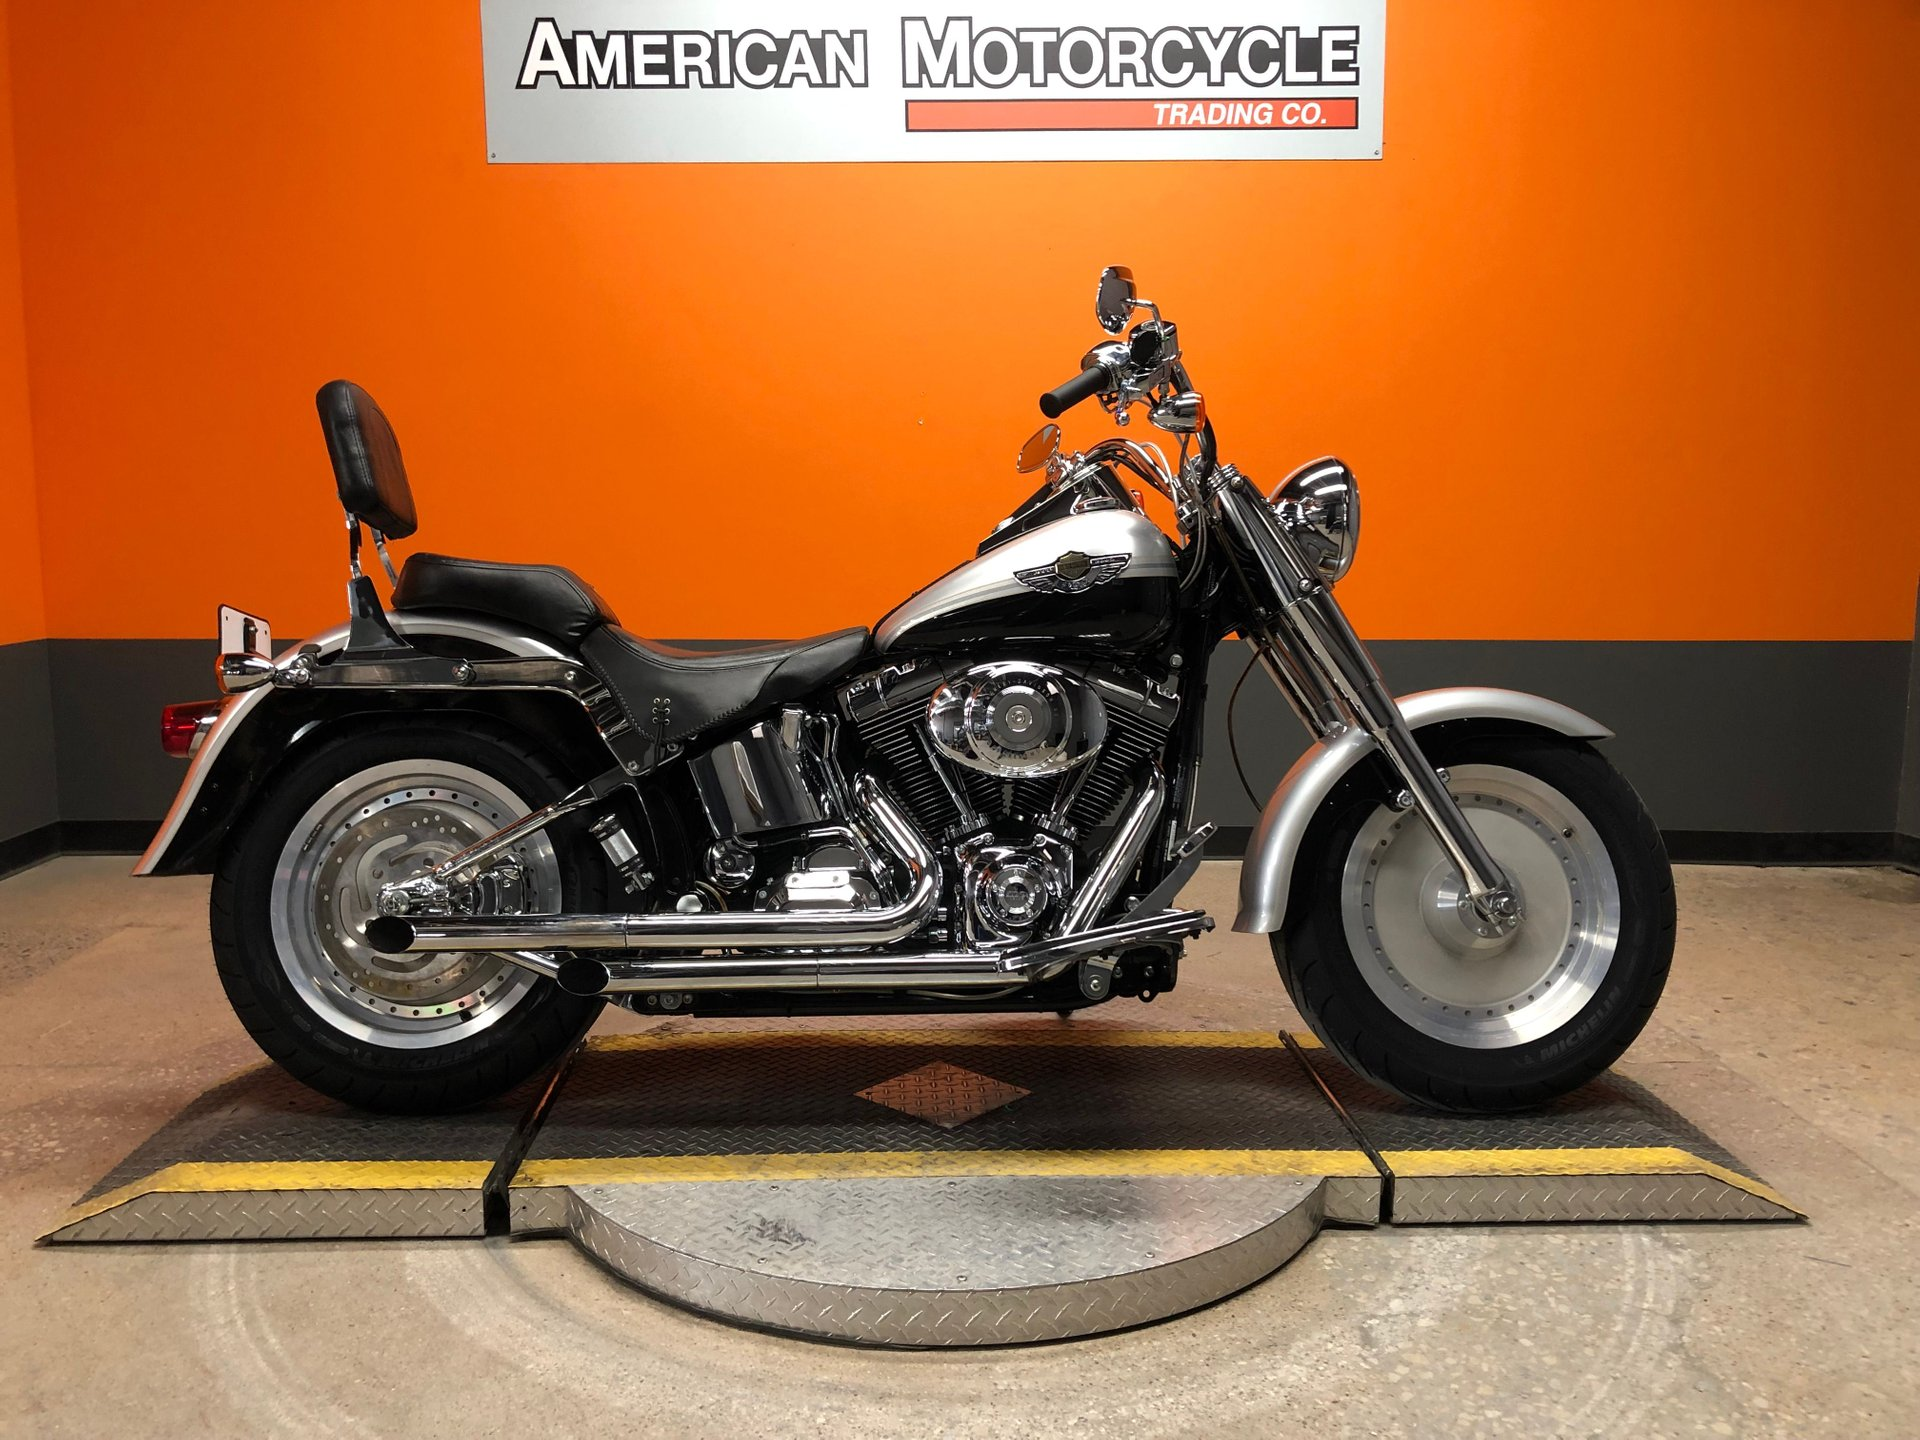 2003 harley davidson softail fat boy flstfi 100th anniversary